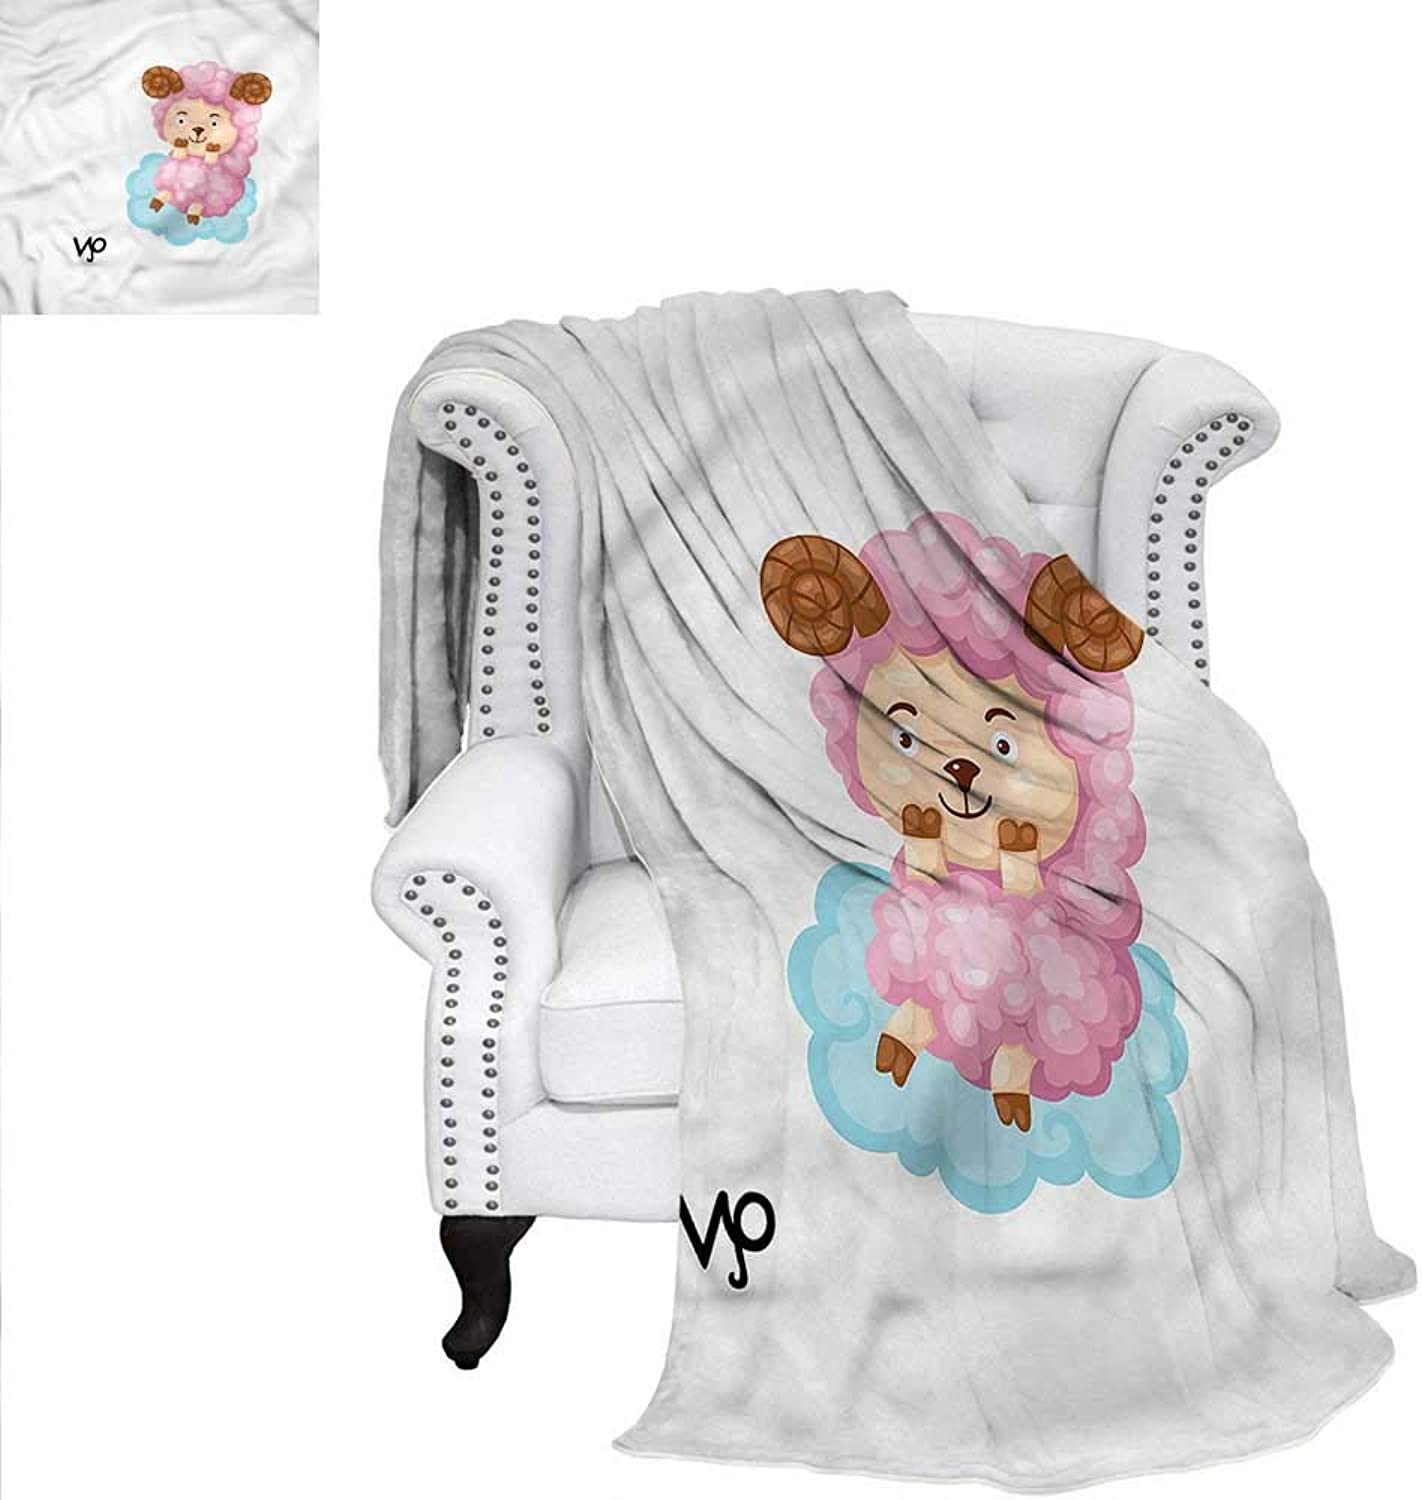 RenteriaDecor Zodiac Aries Warm Microfiber All Season Blanket Cartoon Sheep Kids Warm Microfiber All Season Blanket for Bed or Couch 60 x50